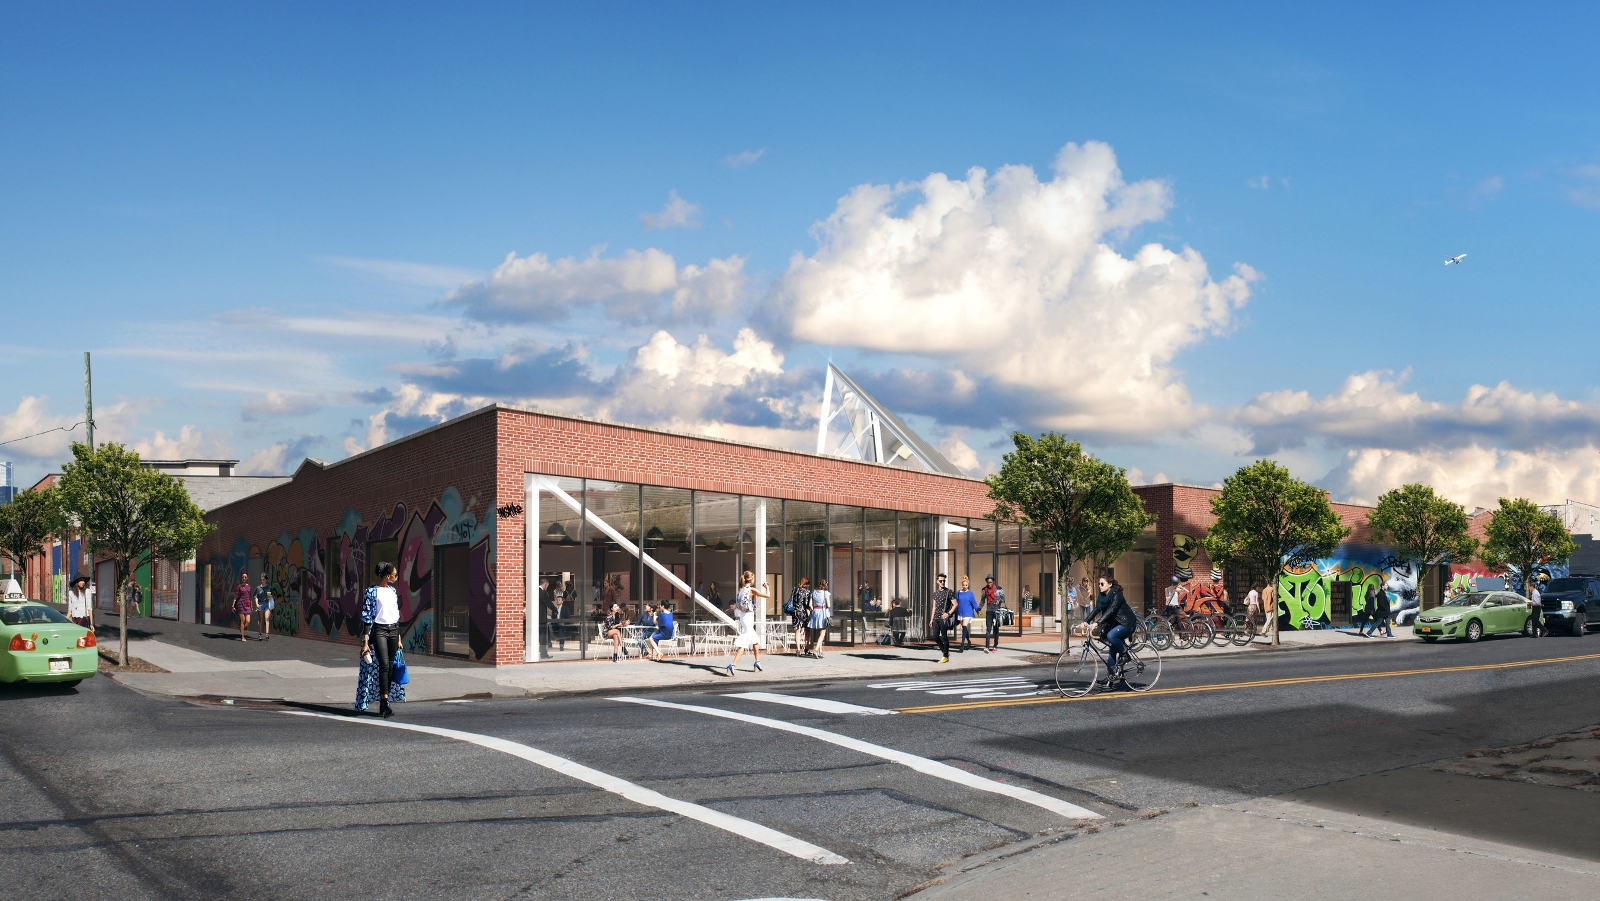 BMW To Open New State-of-the-Art Creative Space For Designers In Greenpoint